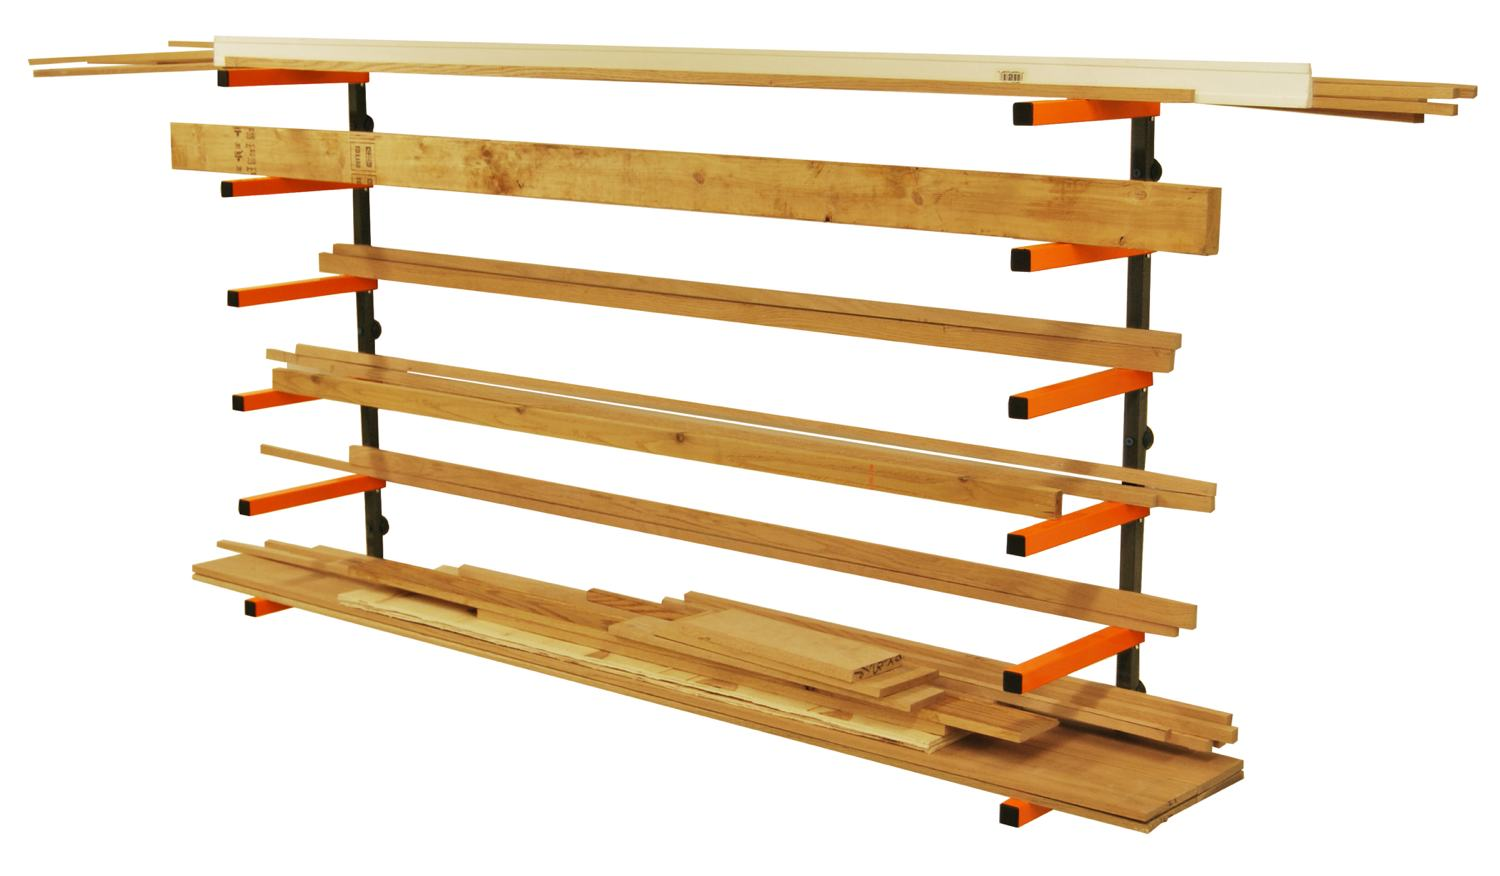 Pbr 001 white for Lumber yard storage racks